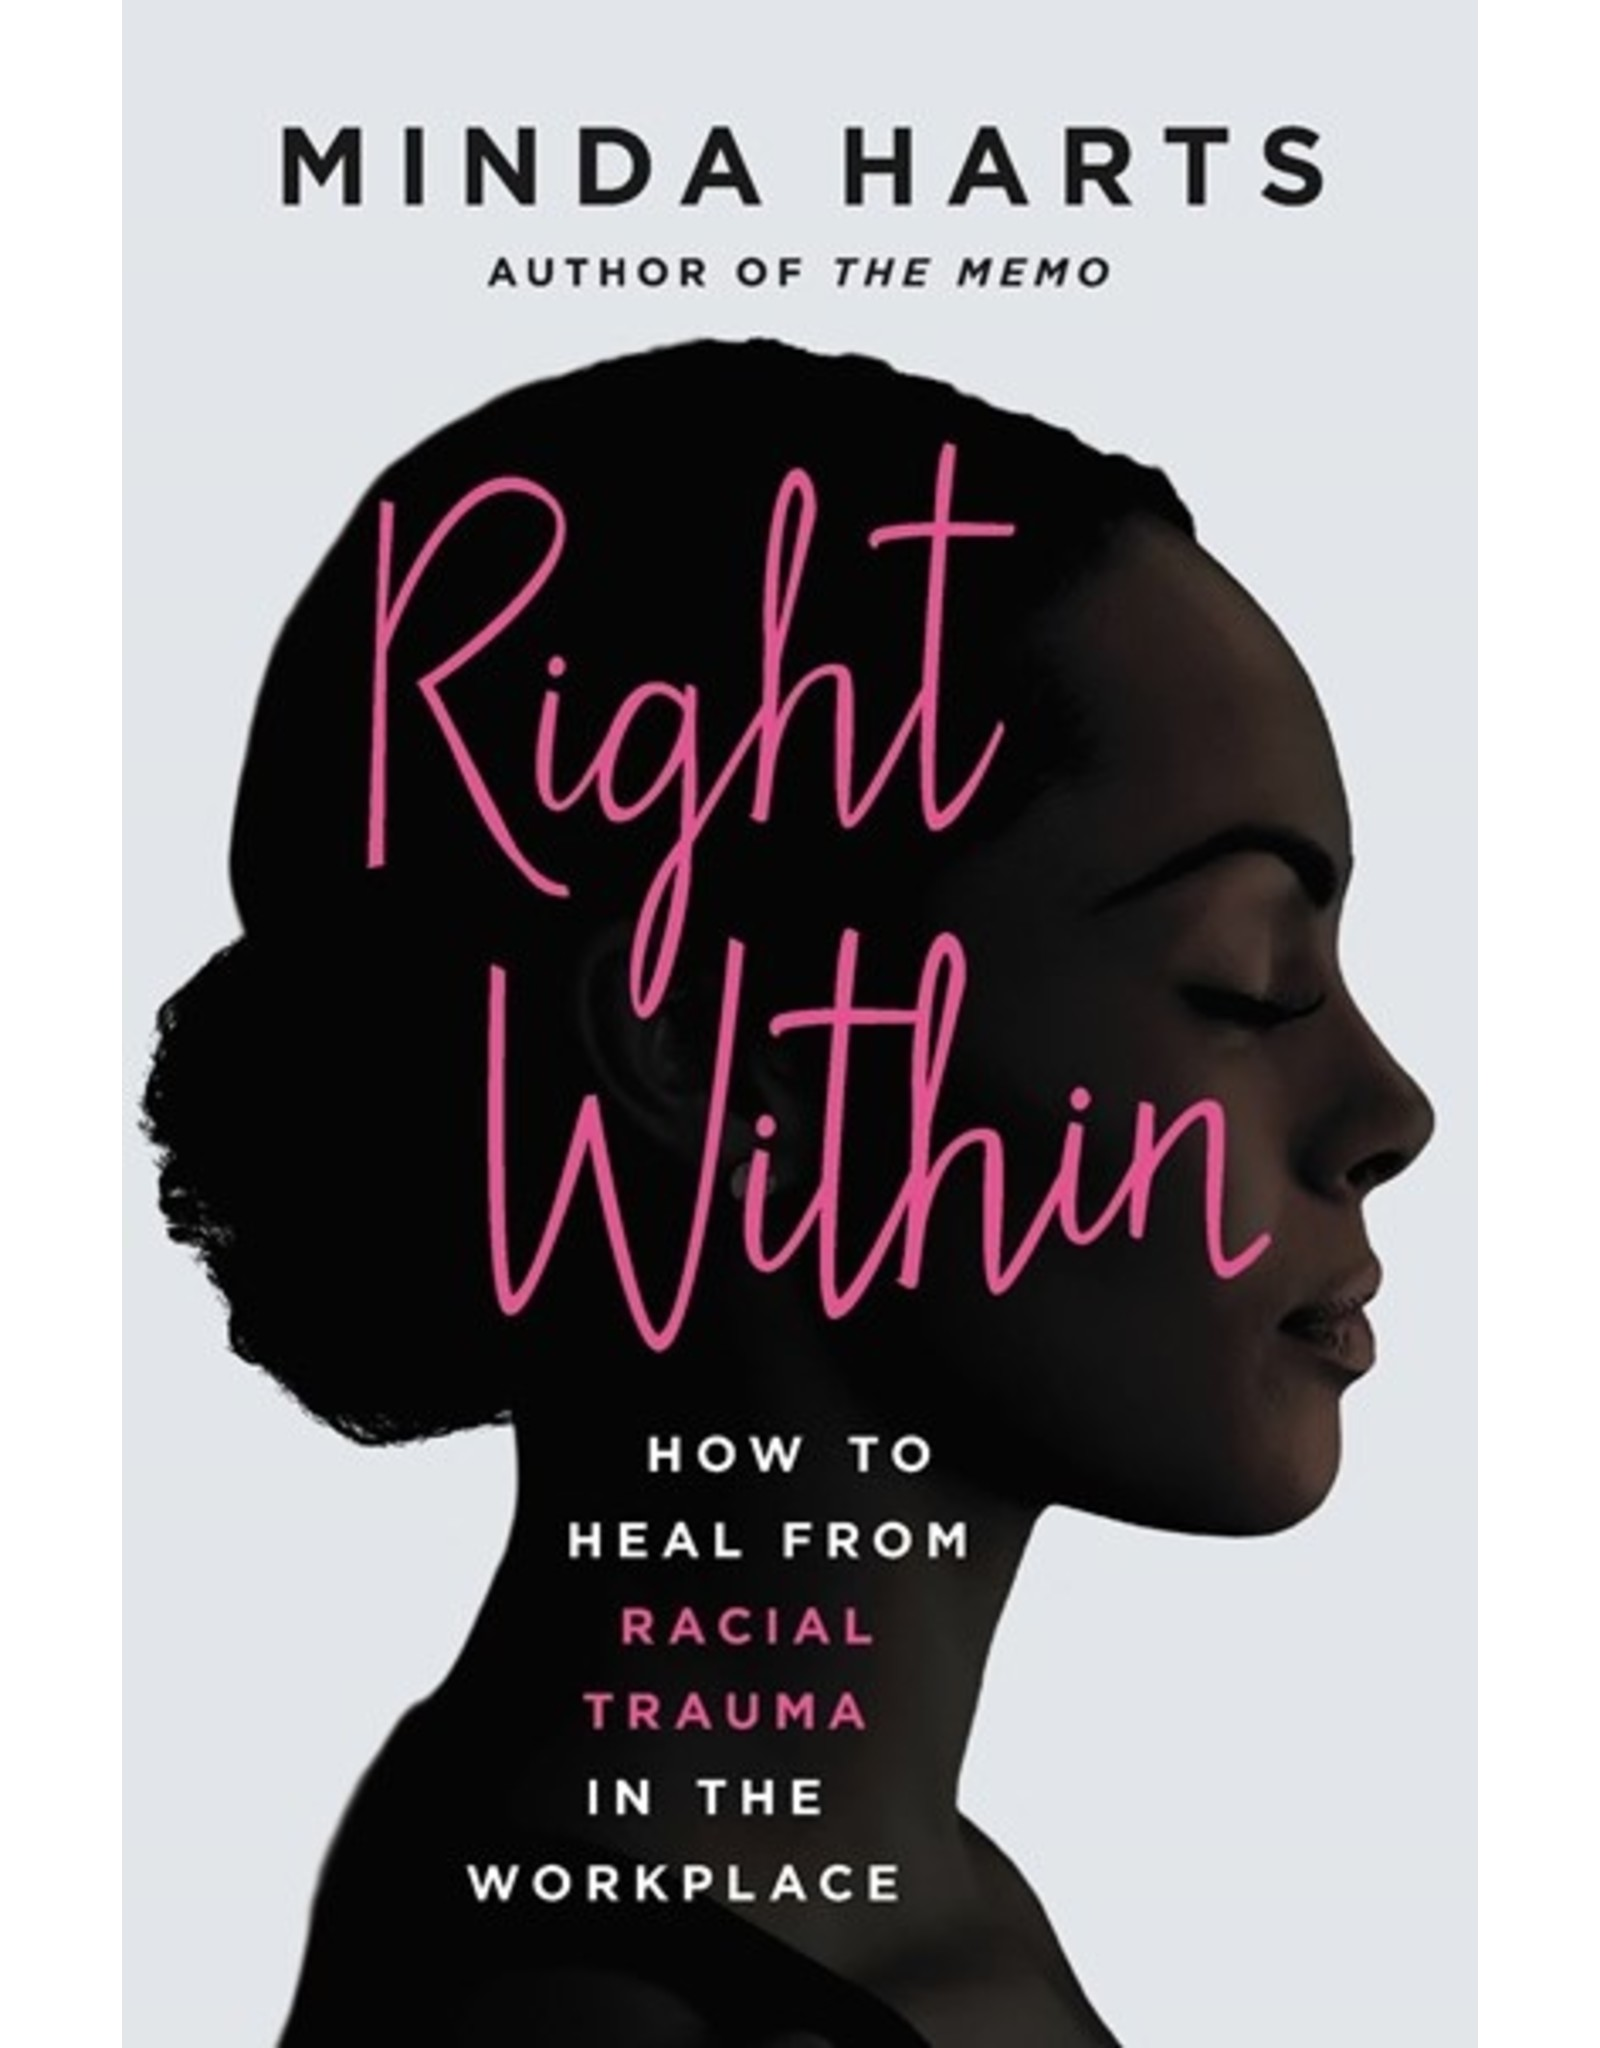 Books Right Within : How to Heal From Racial Trauma in the Workplace by Minda Harts (Virtual Event 10/6/21)